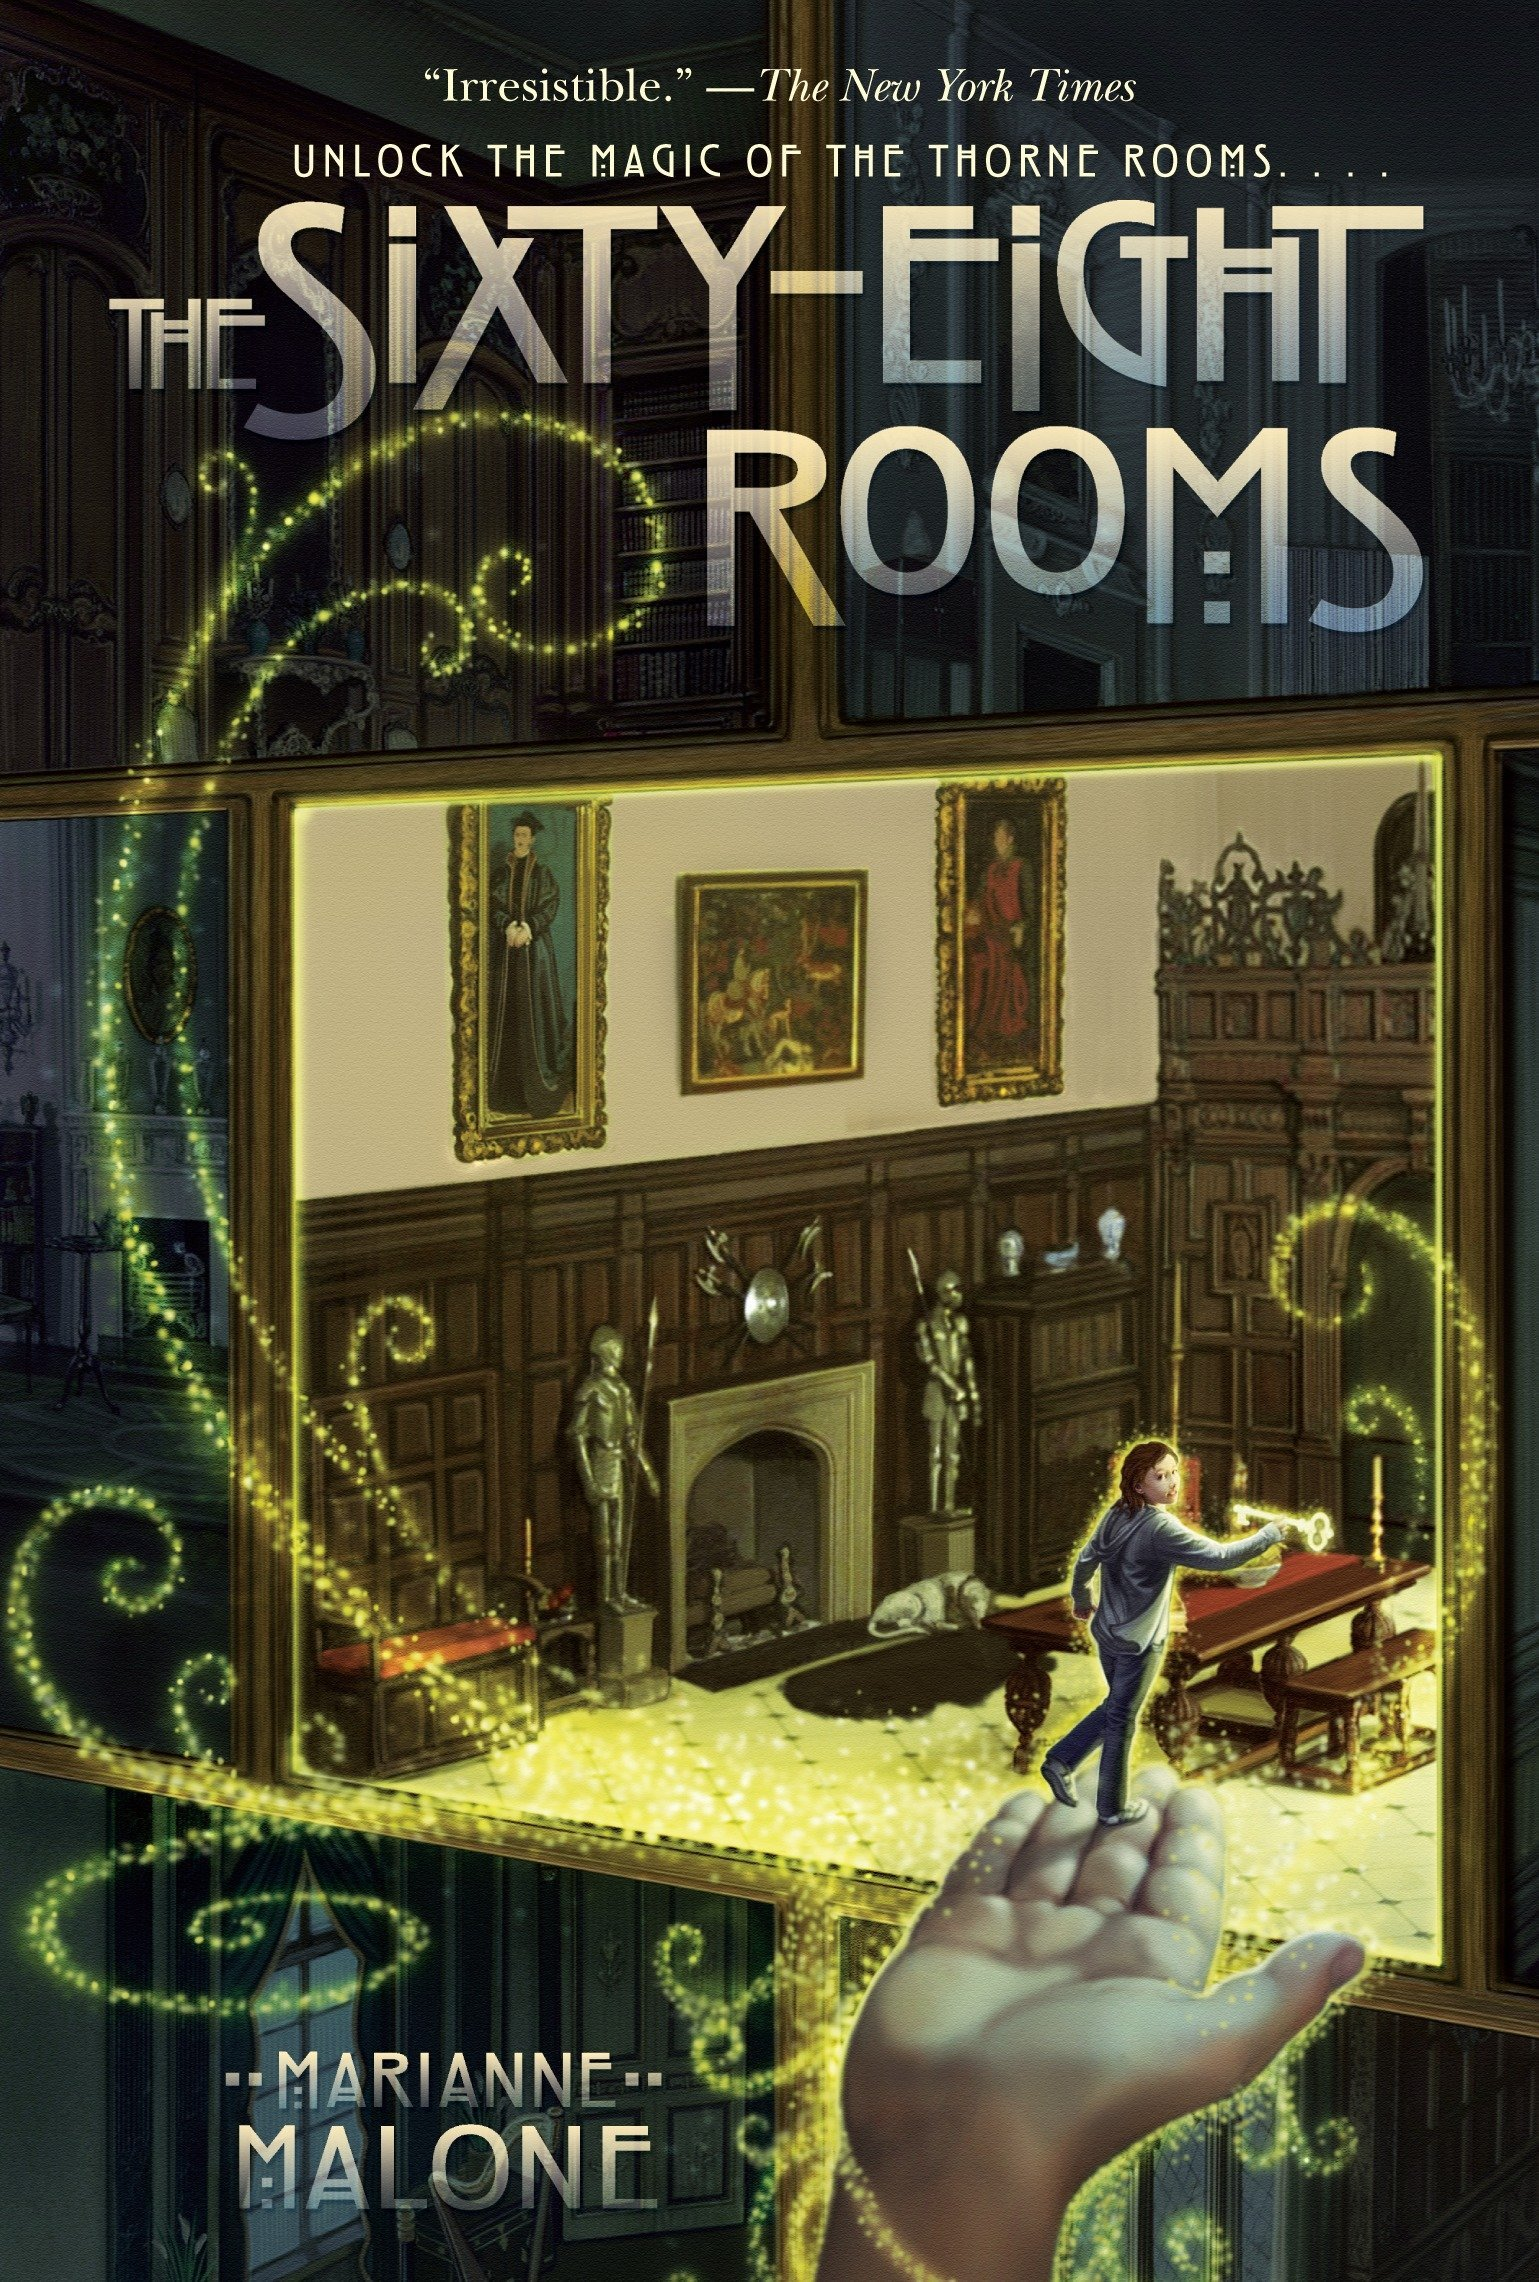 Cover of the sixty-eight rooms by Marianne Malone